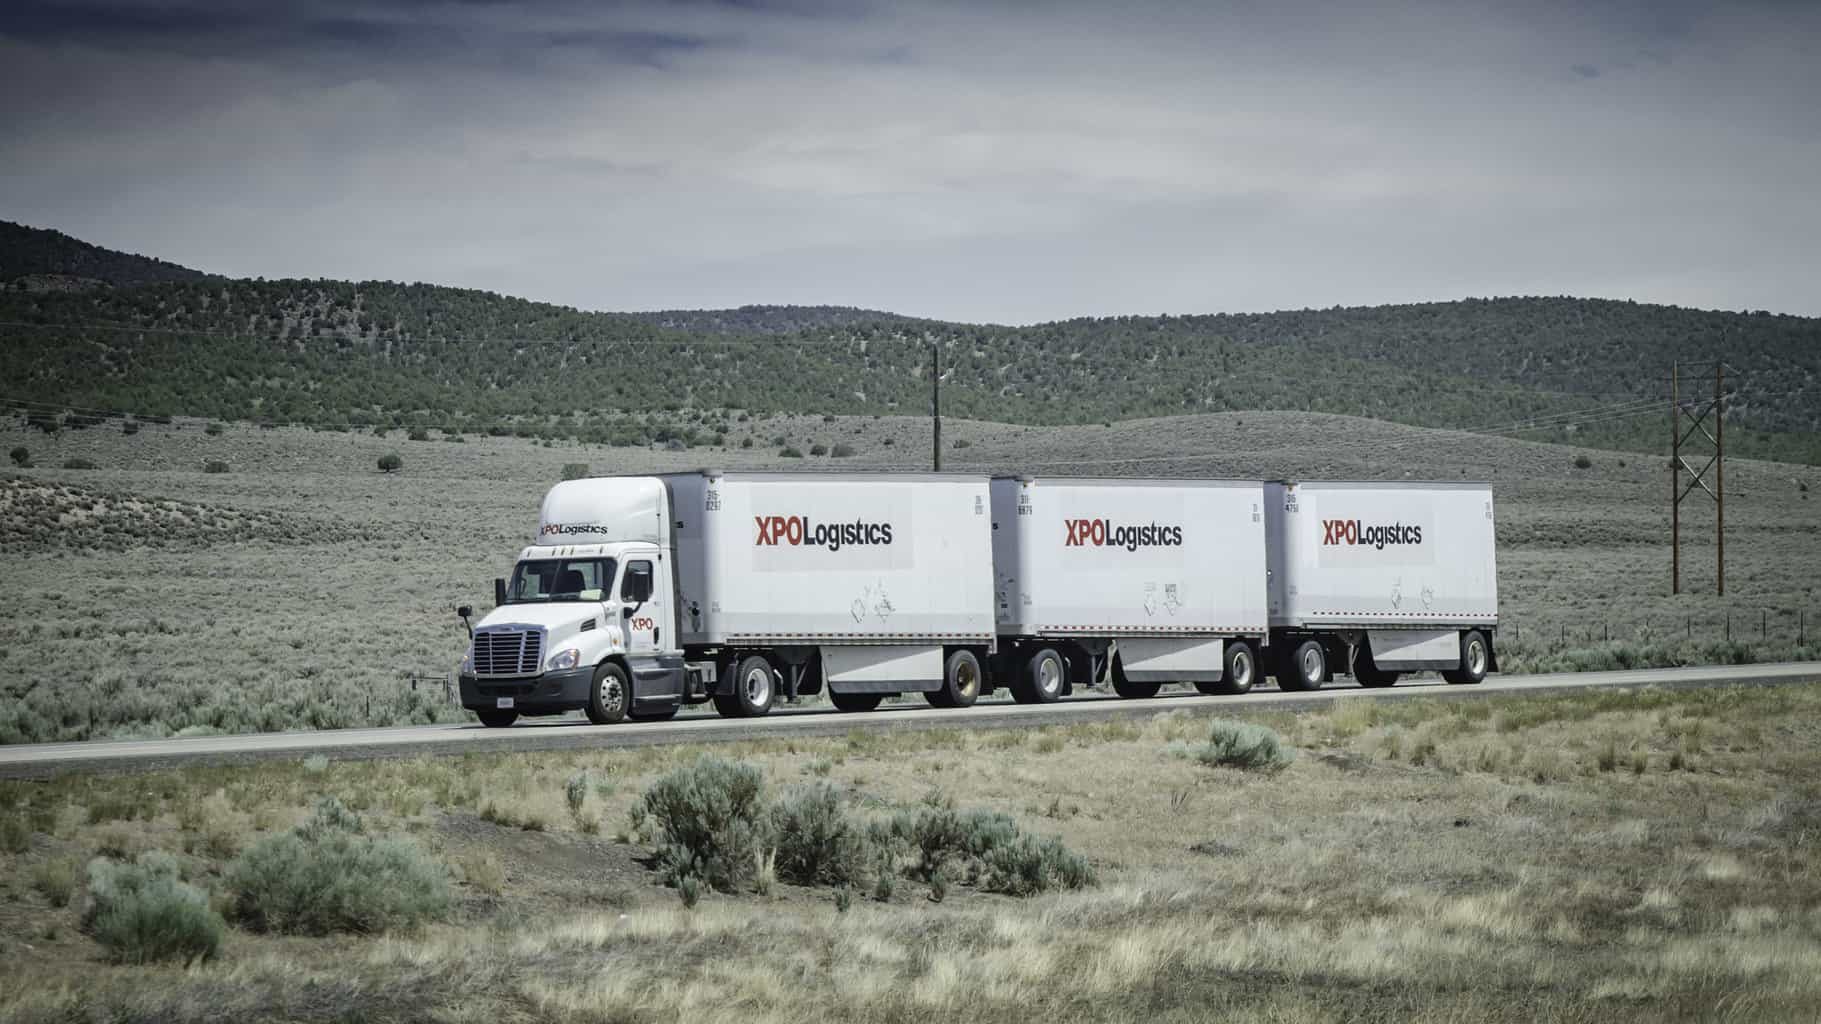 Moody's lifts ratings on more than $3B of XPO Logistics debt